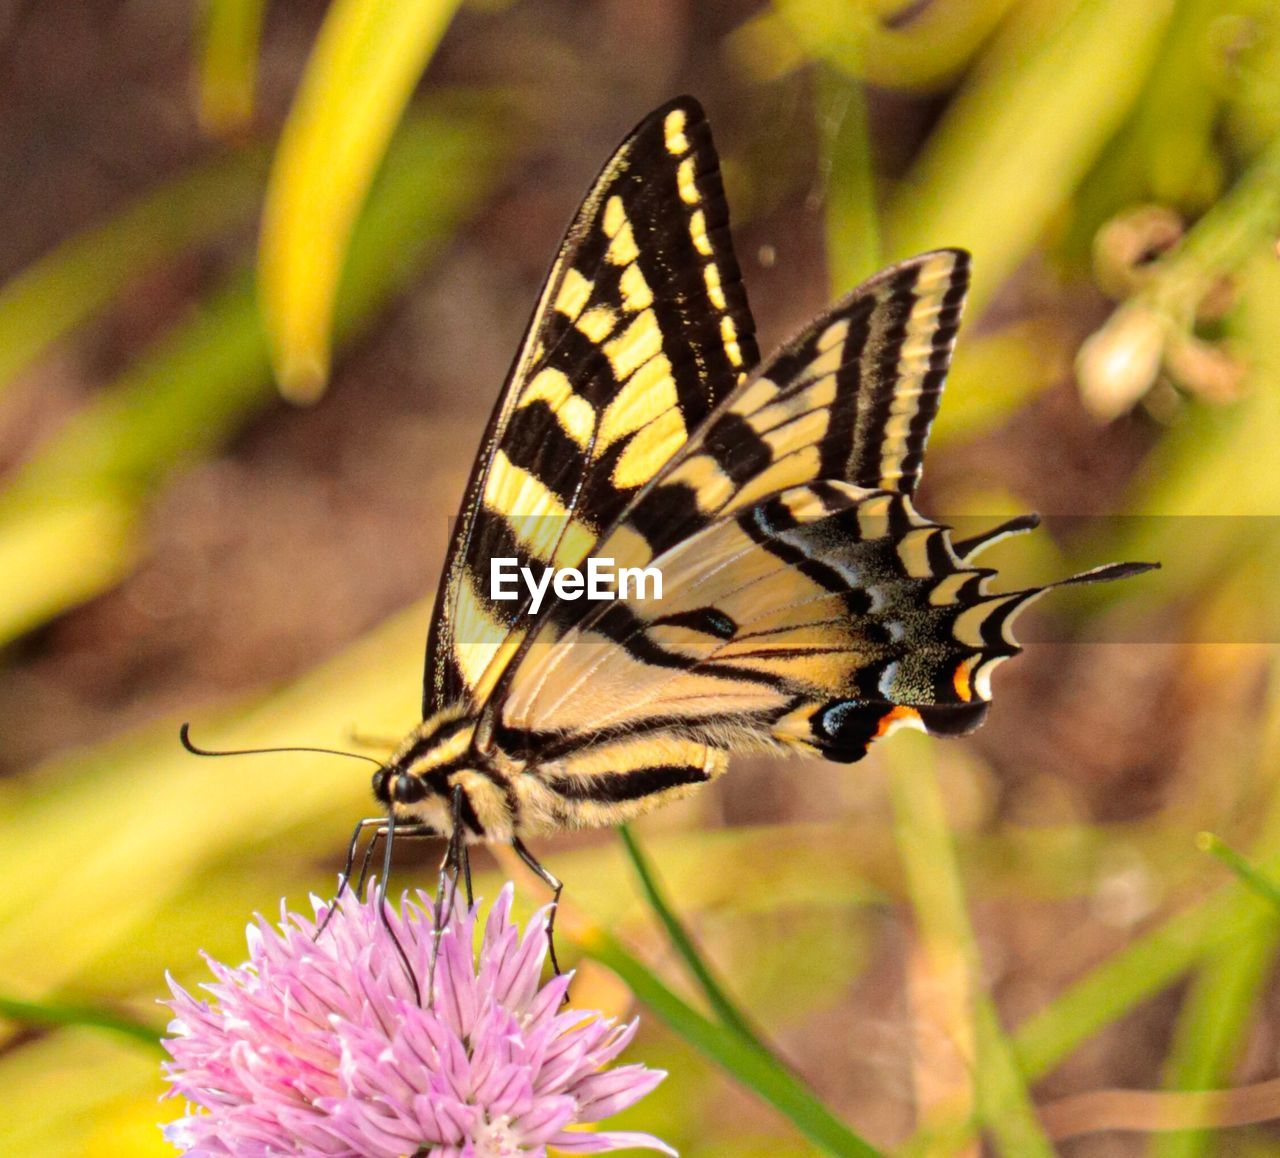 flower, flowering plant, insect, animal wildlife, animal themes, beauty in nature, invertebrate, plant, animals in the wild, animal, one animal, butterfly - insect, growth, fragility, vulnerability, animal wing, close-up, freshness, petal, flower head, no people, pollination, outdoors, butterfly